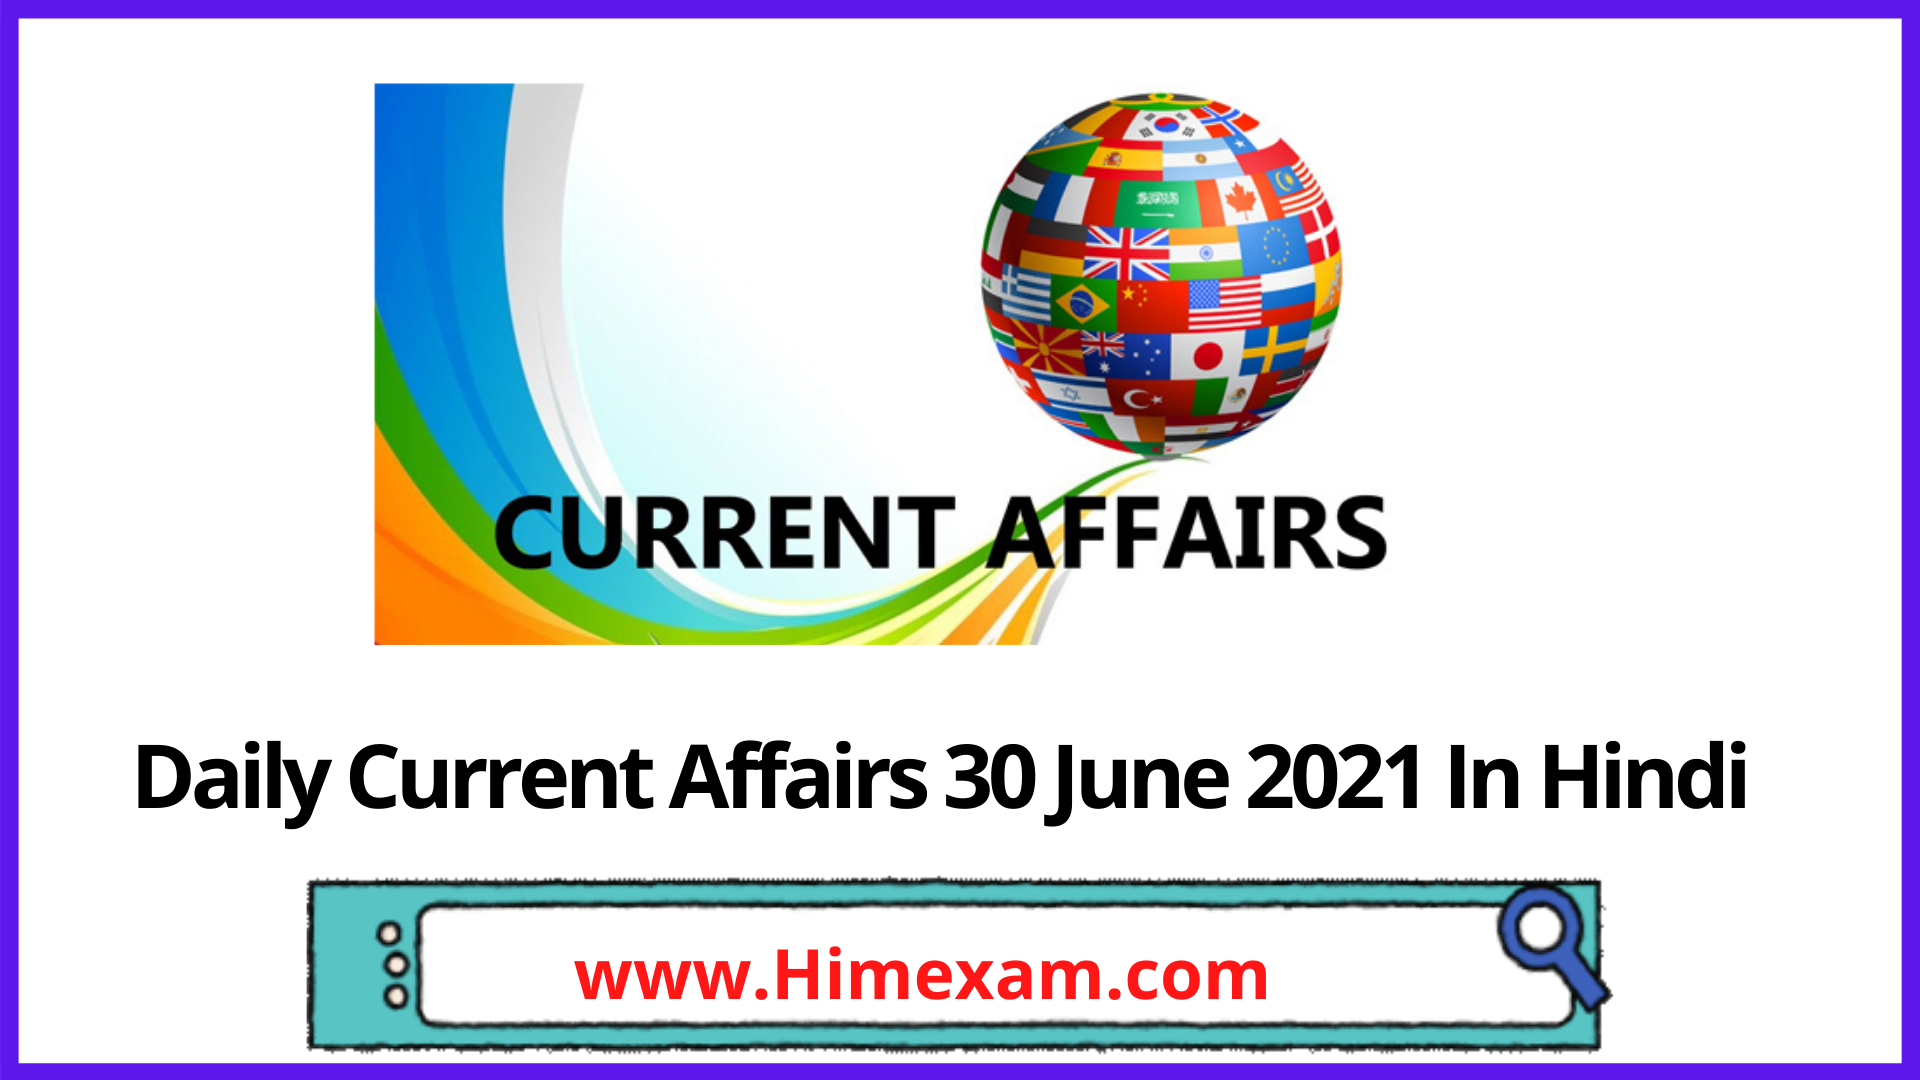 Daily Current Affairs 30 June 2021 In Hindi